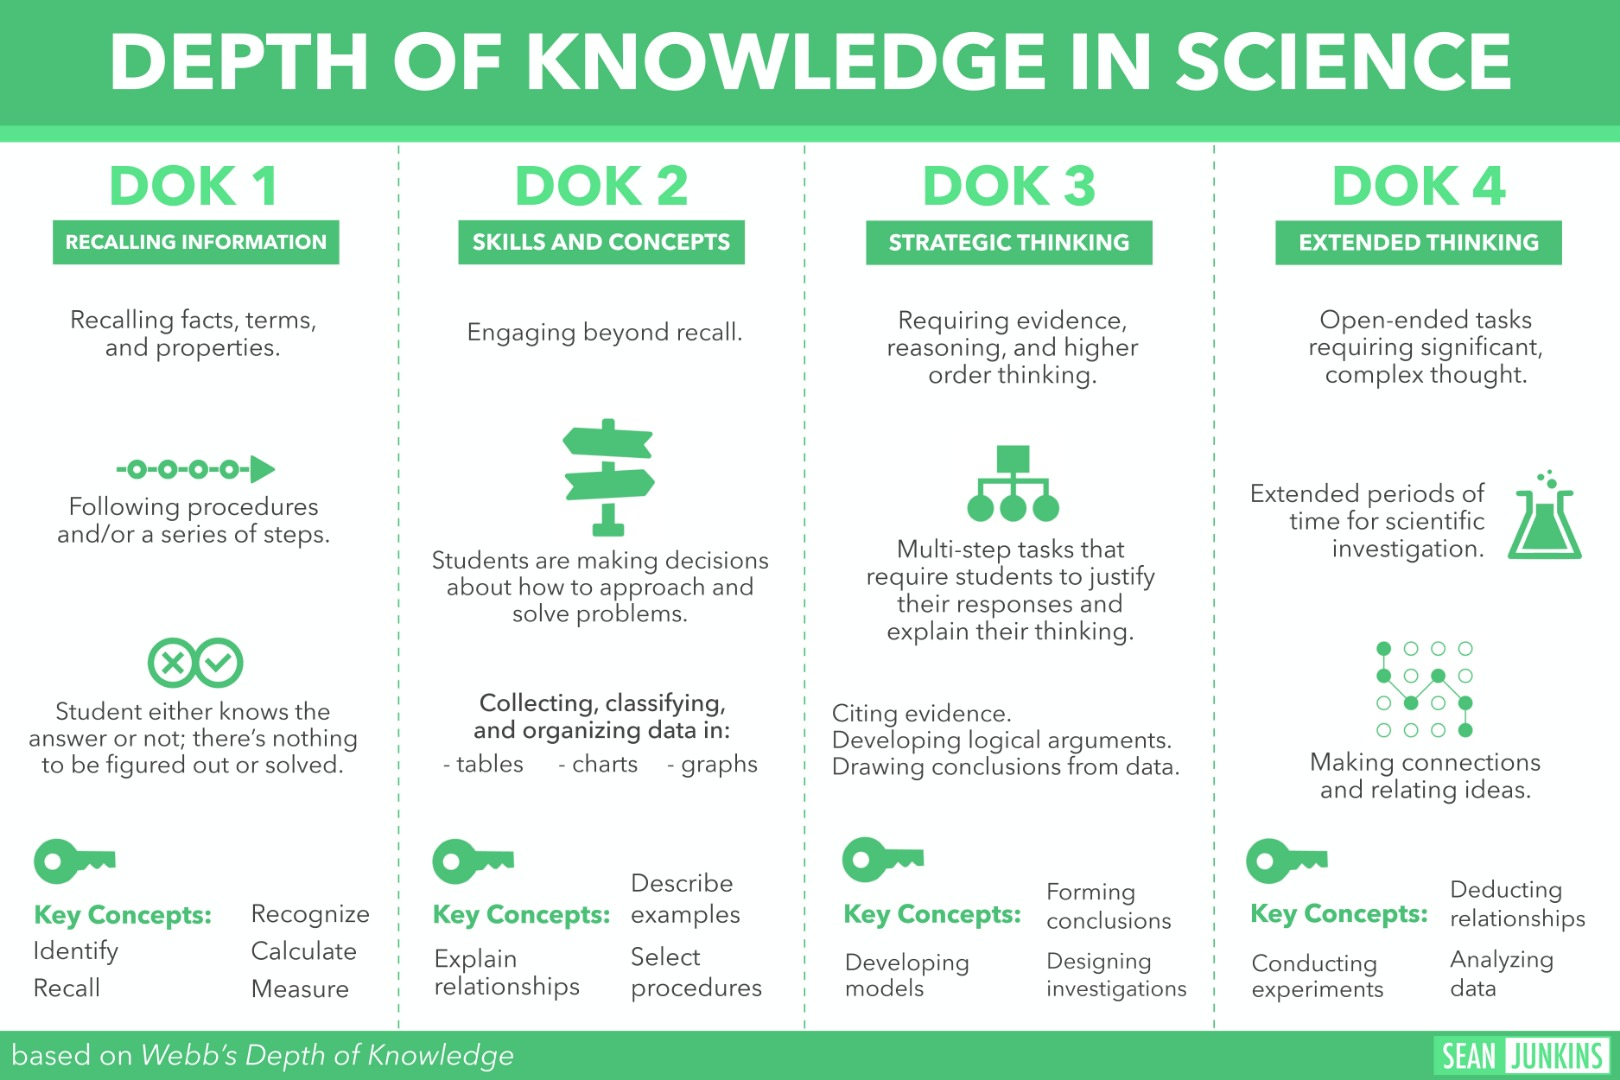 DOK in Science